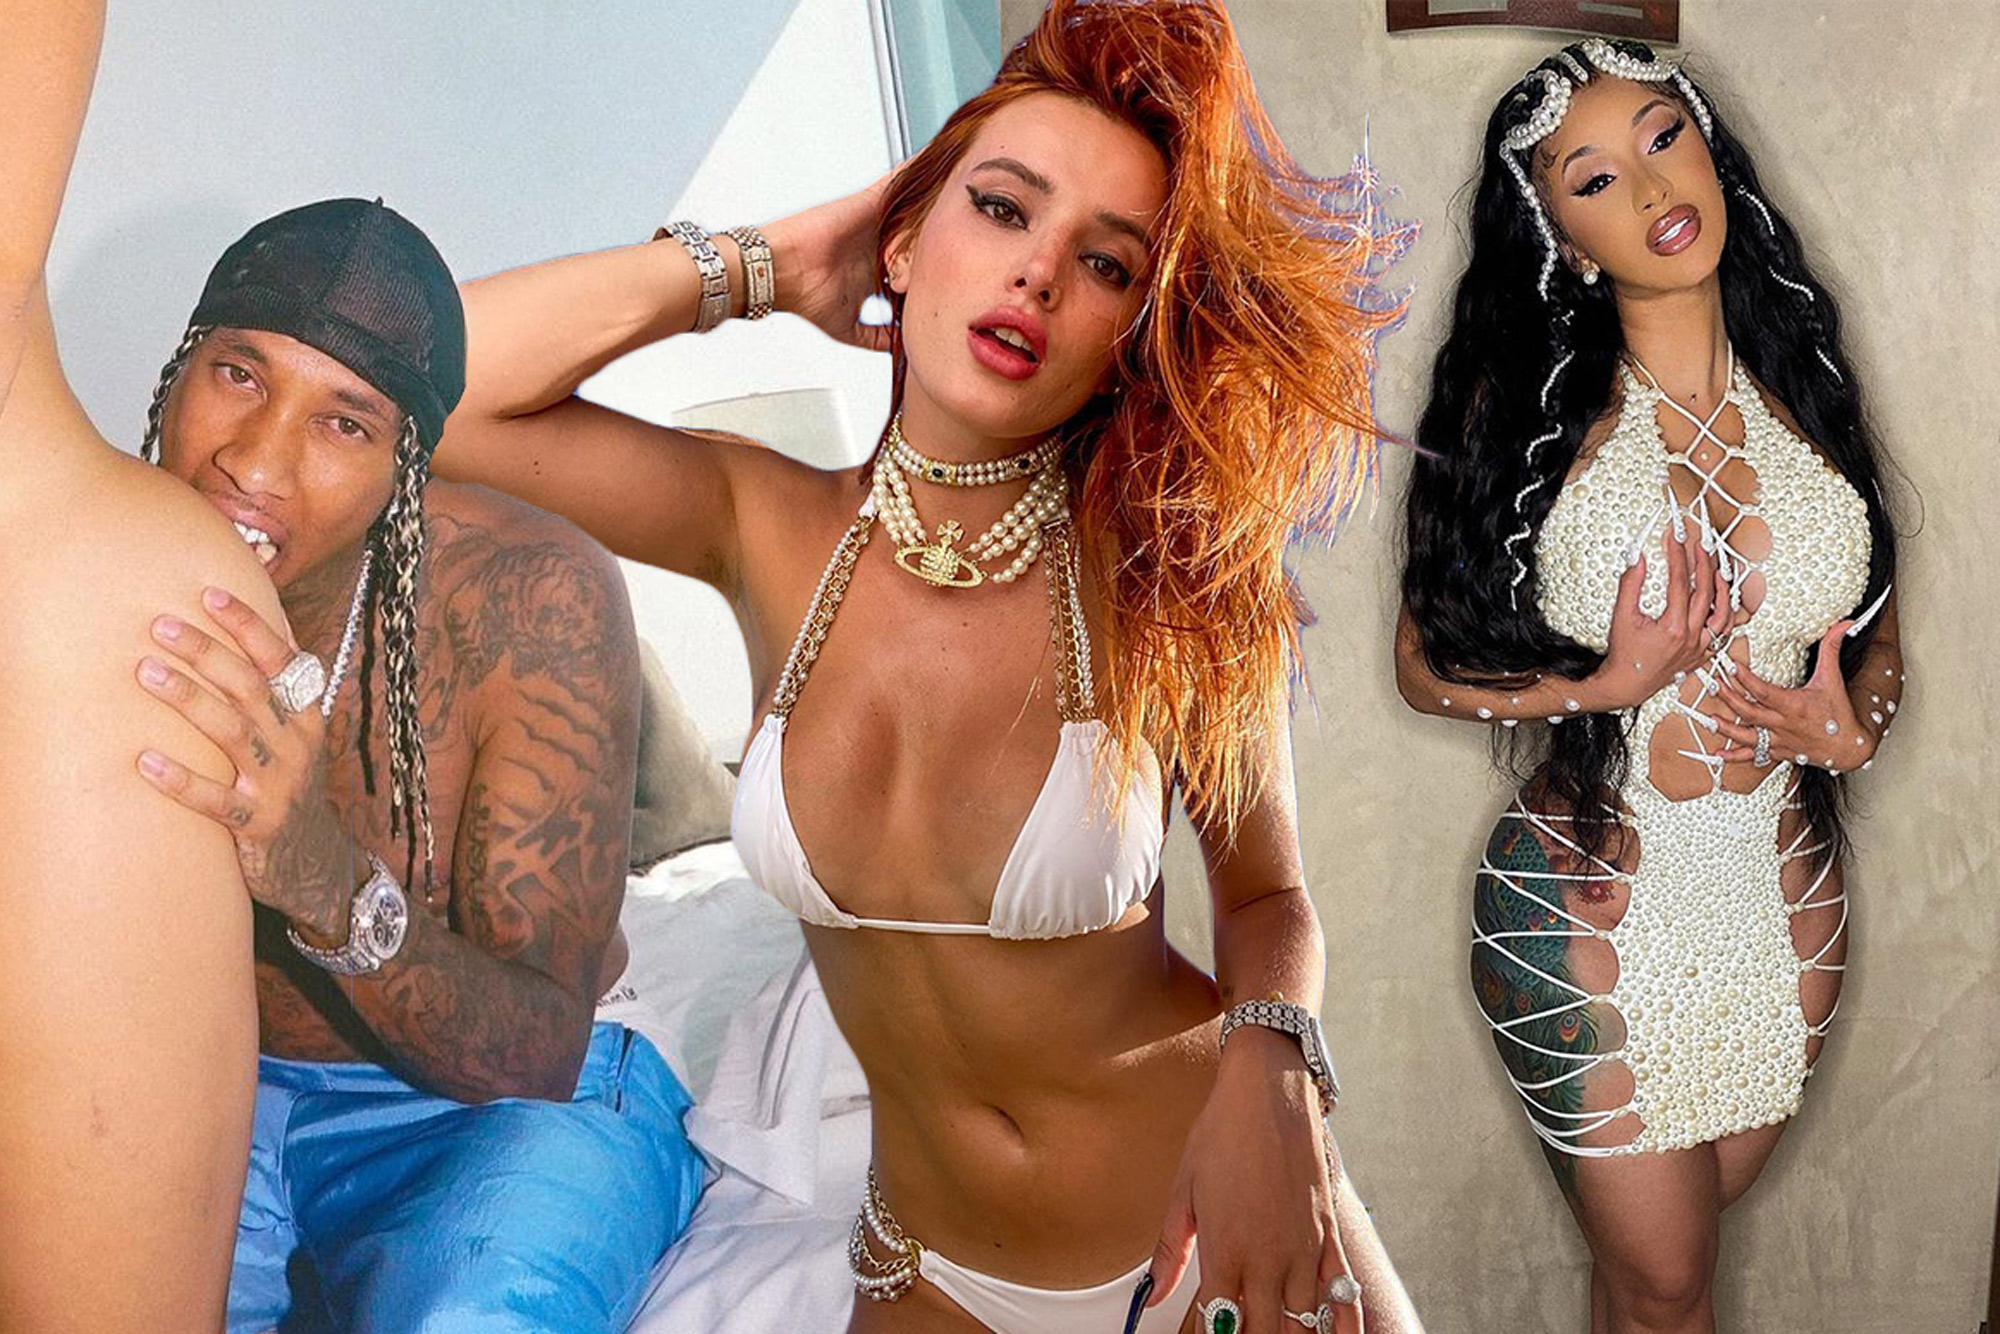 Rae nudes summer Video reportedly